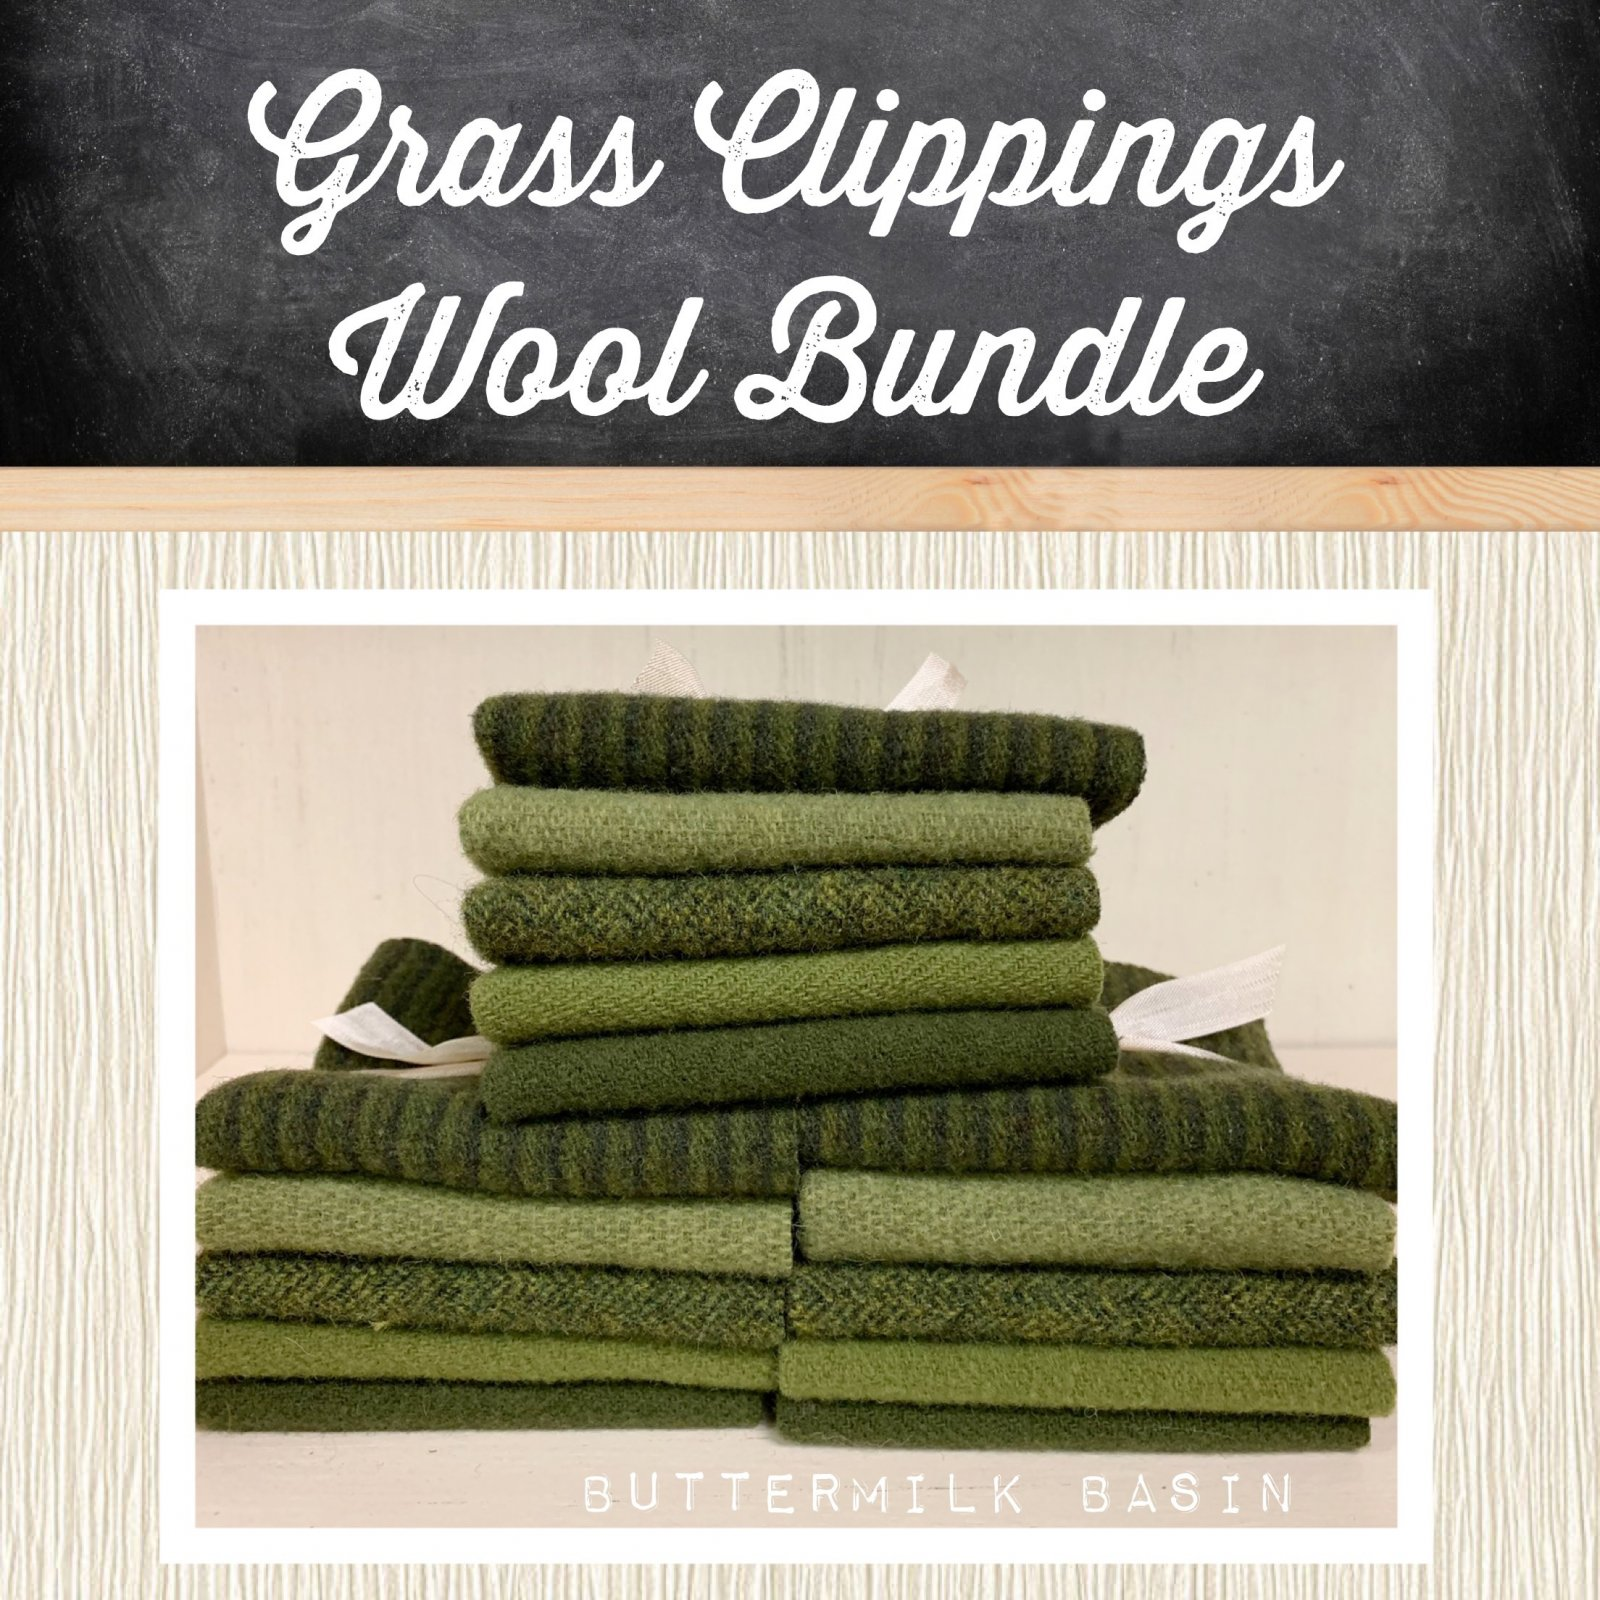 Grass Clippings Wool Bundle